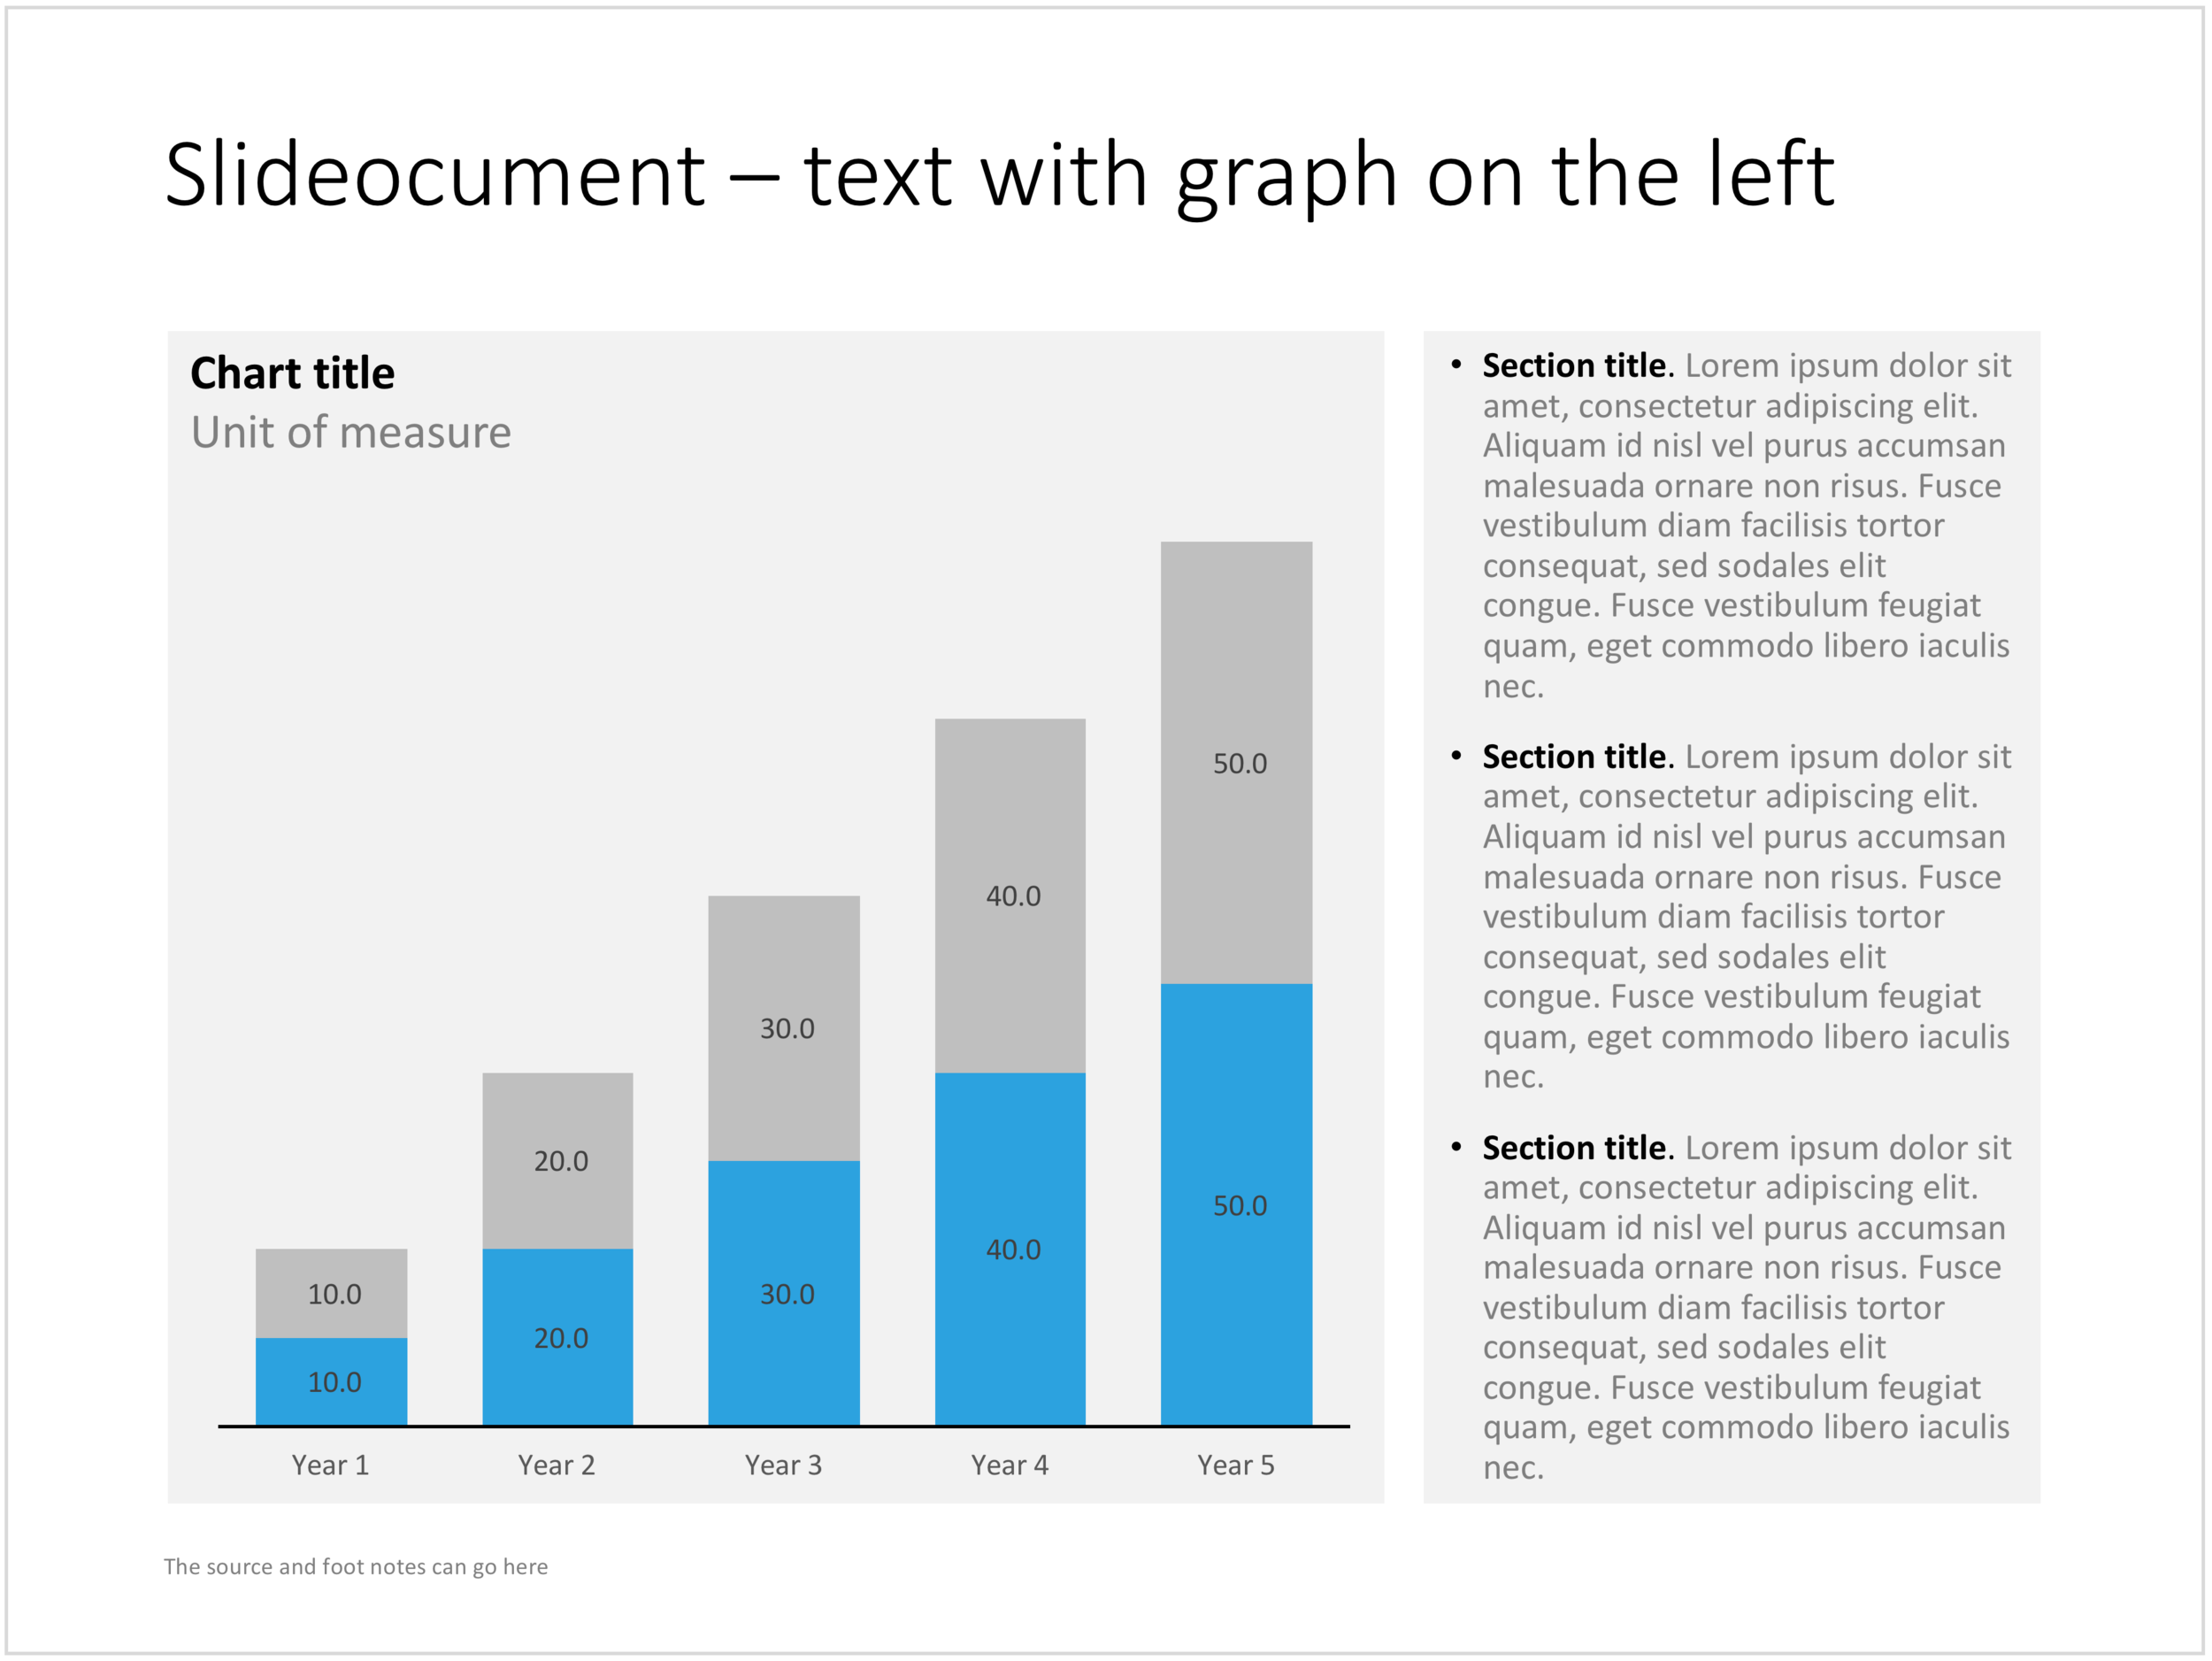 236 - Slideocument with graph on the left.png